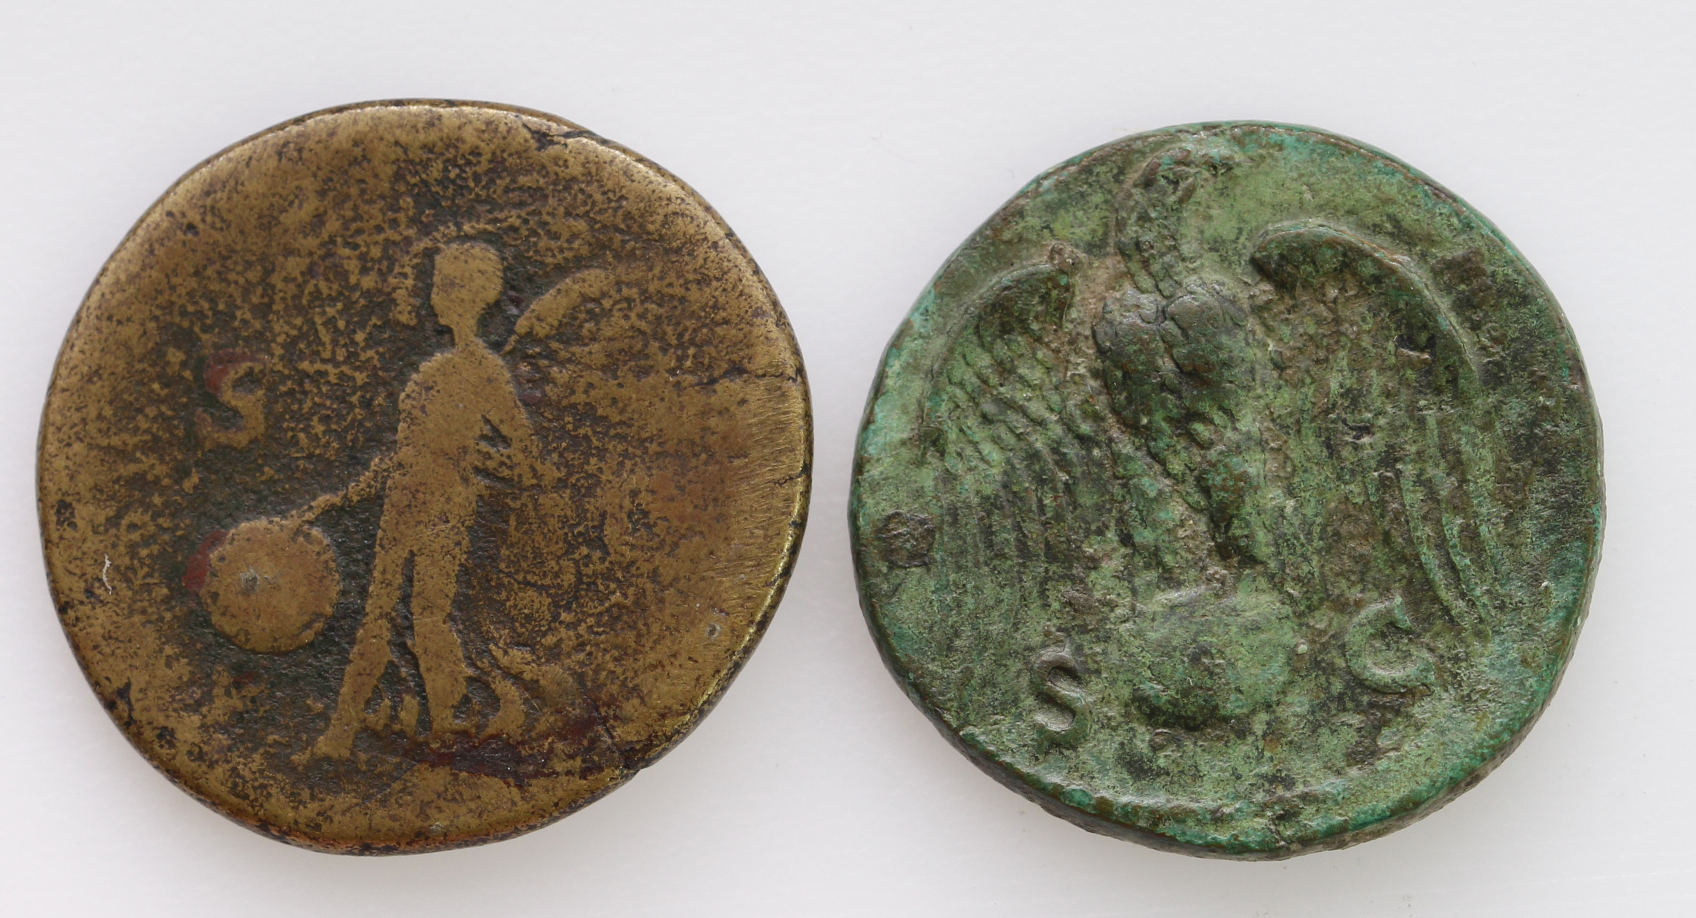 Roman Imperial: Vespasian (2): AE As, eagle on globe,11.03g, VF, green patina, along with brass - Image 2 of 2